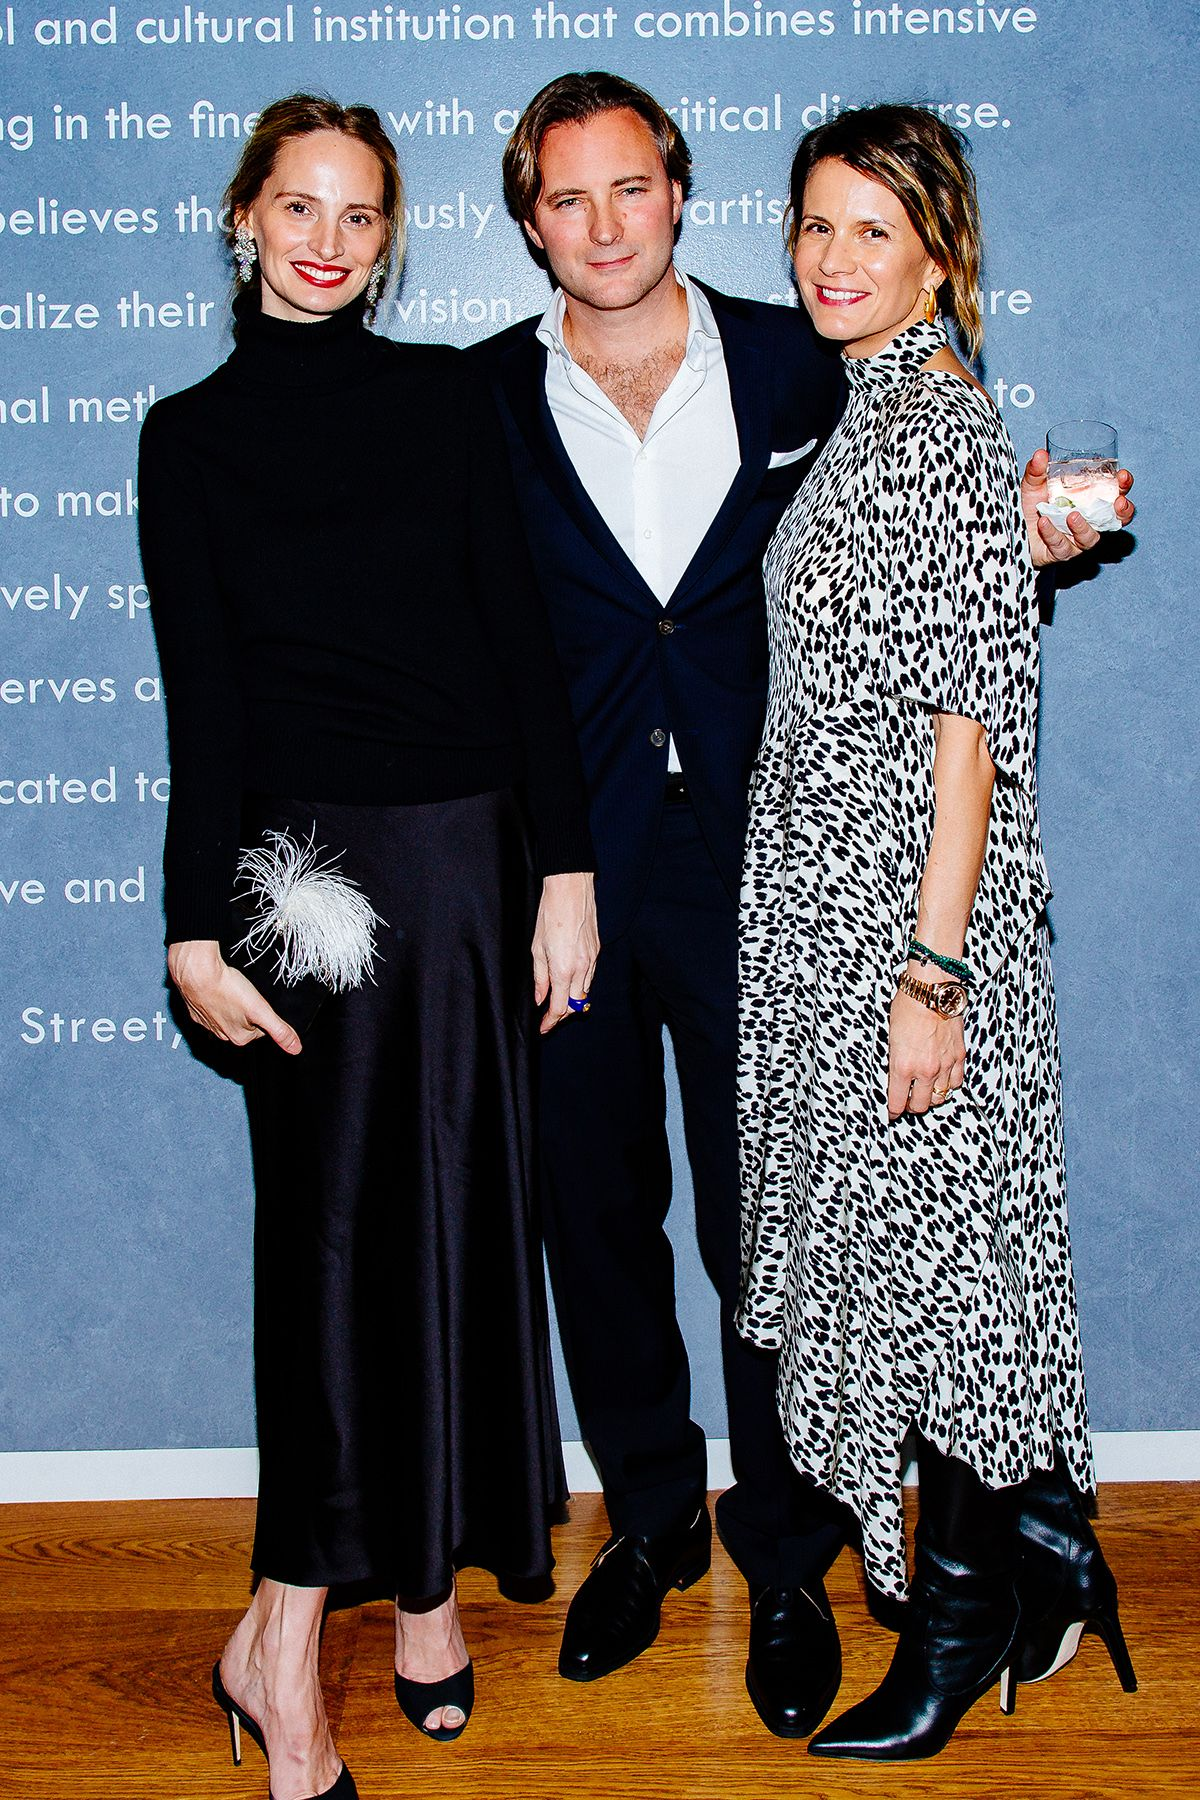 NEW YORK ACADEMY OF ART BENEFIT DRAWING PARTY :HOSTED BY EMMANUEL & CHRISTINA DI DONNA